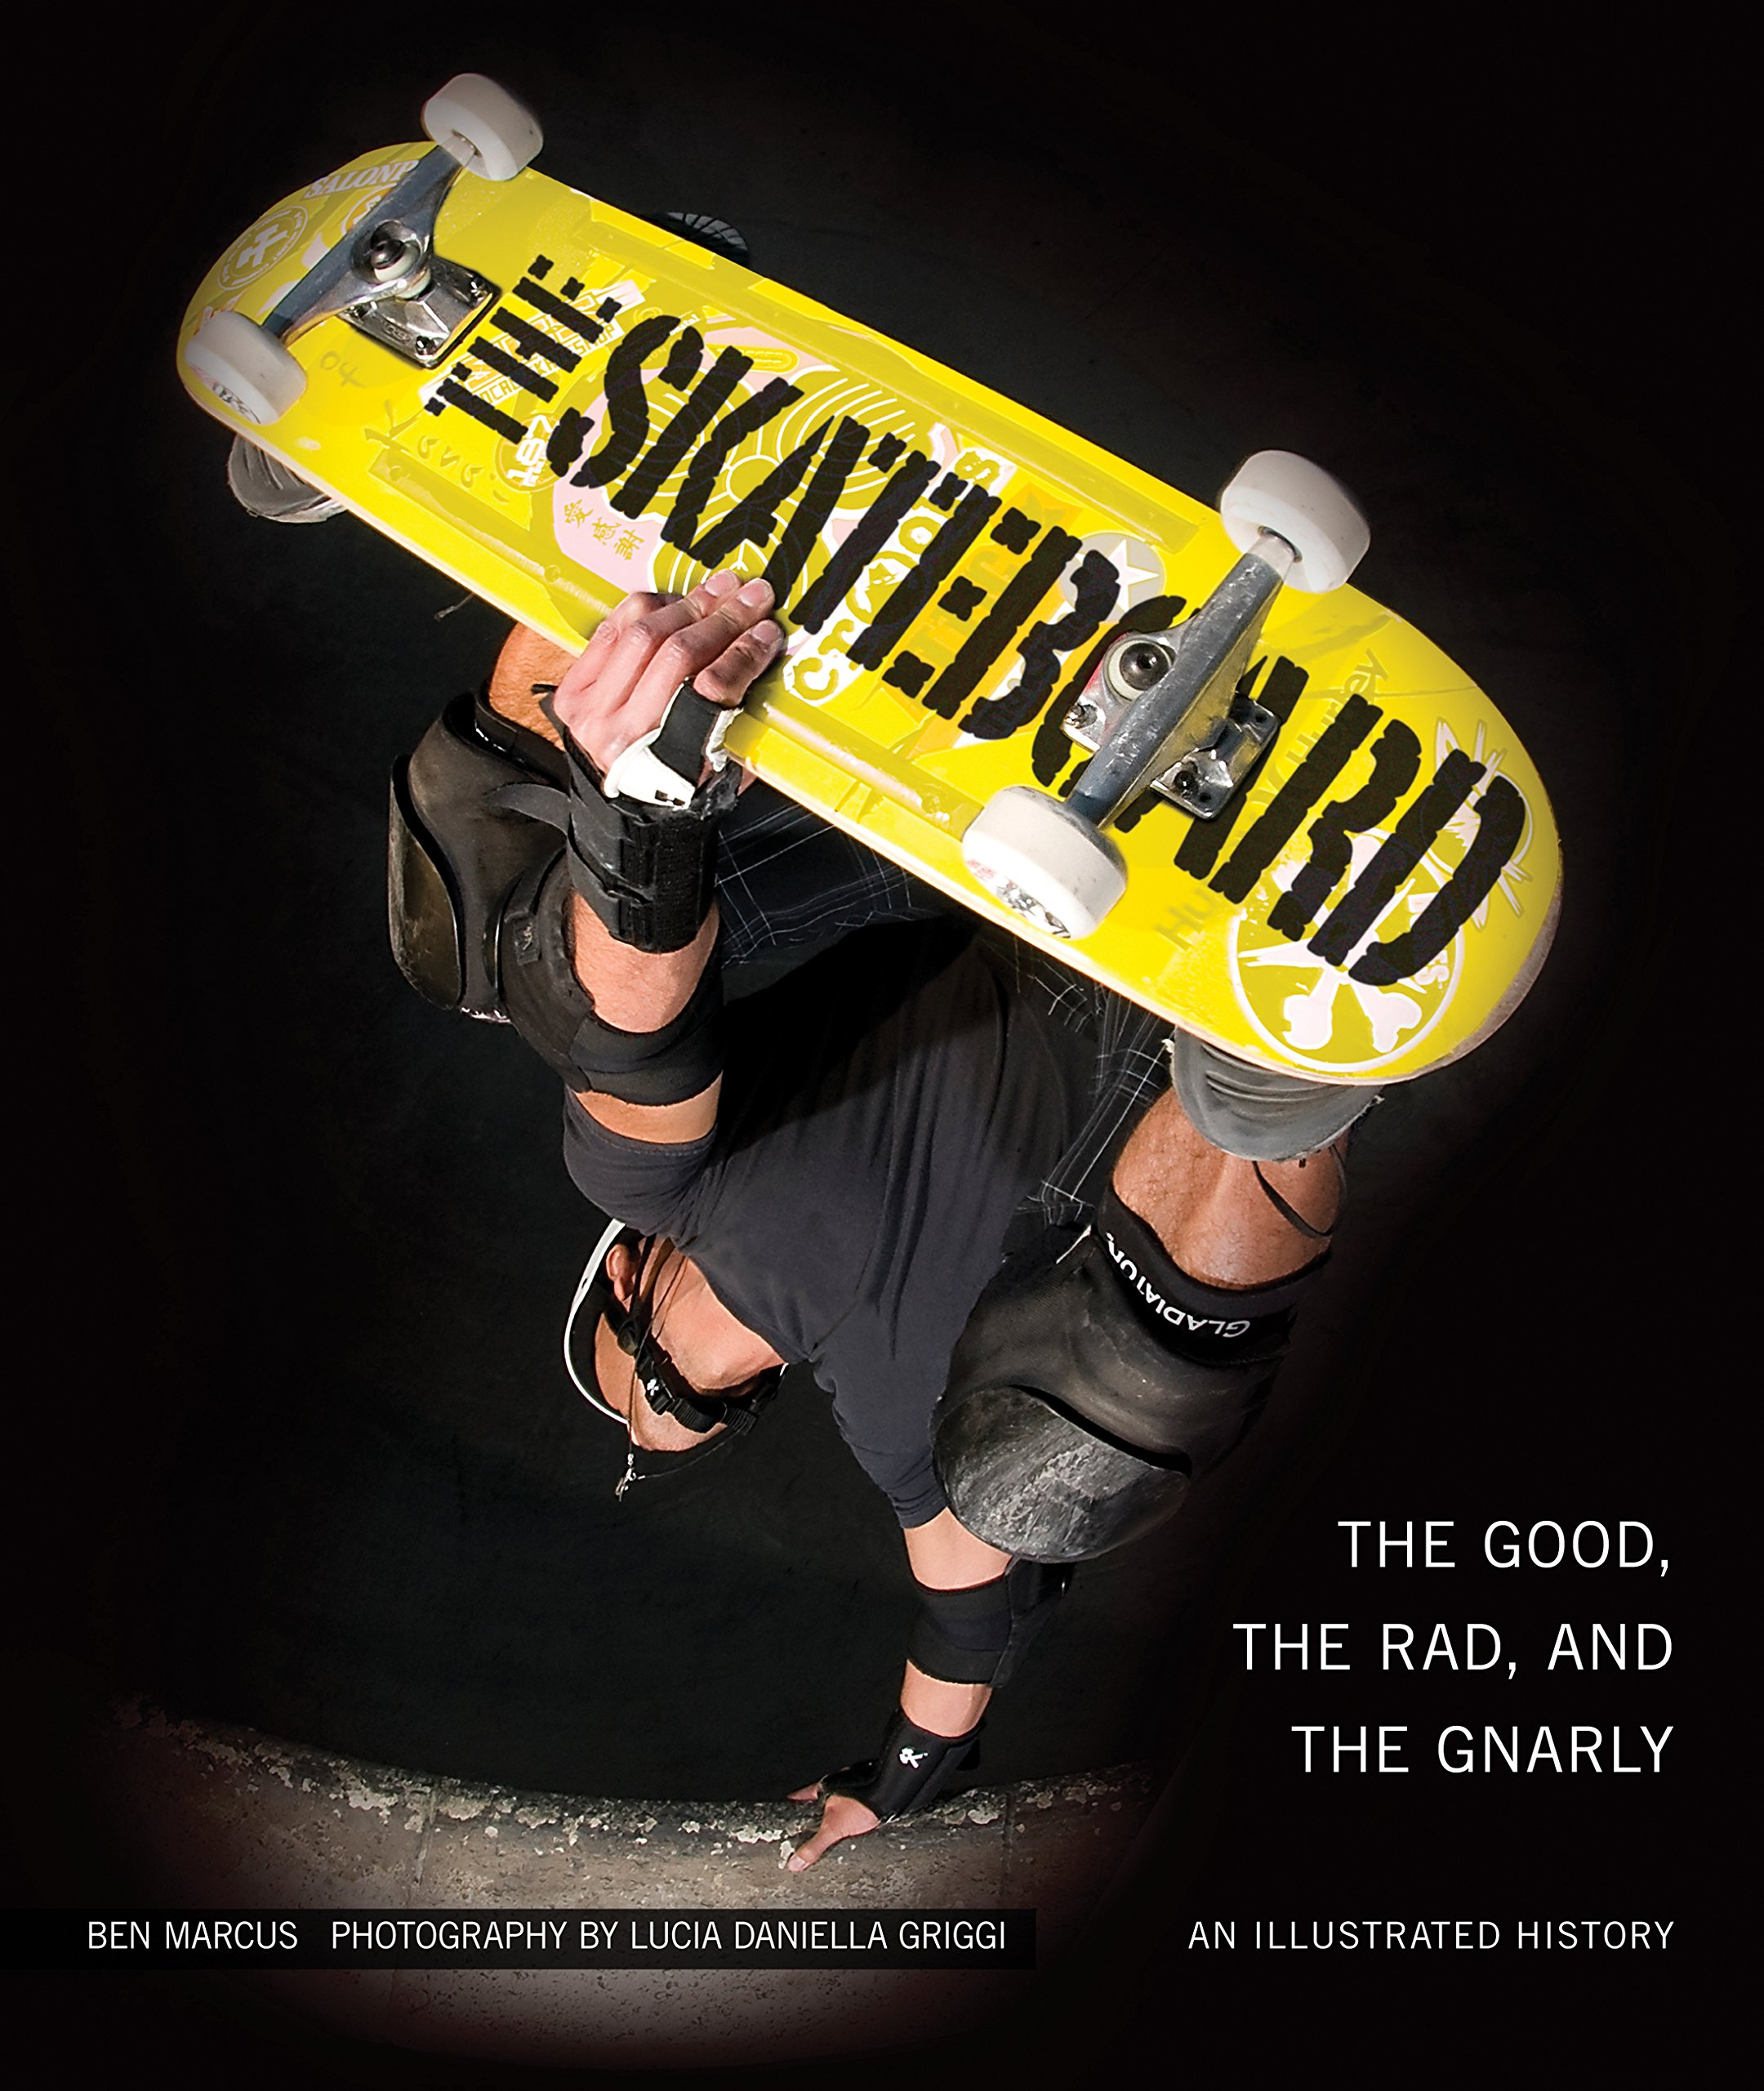 Skateboard  The Good The Rad And The Gnarly  An Illustrated History